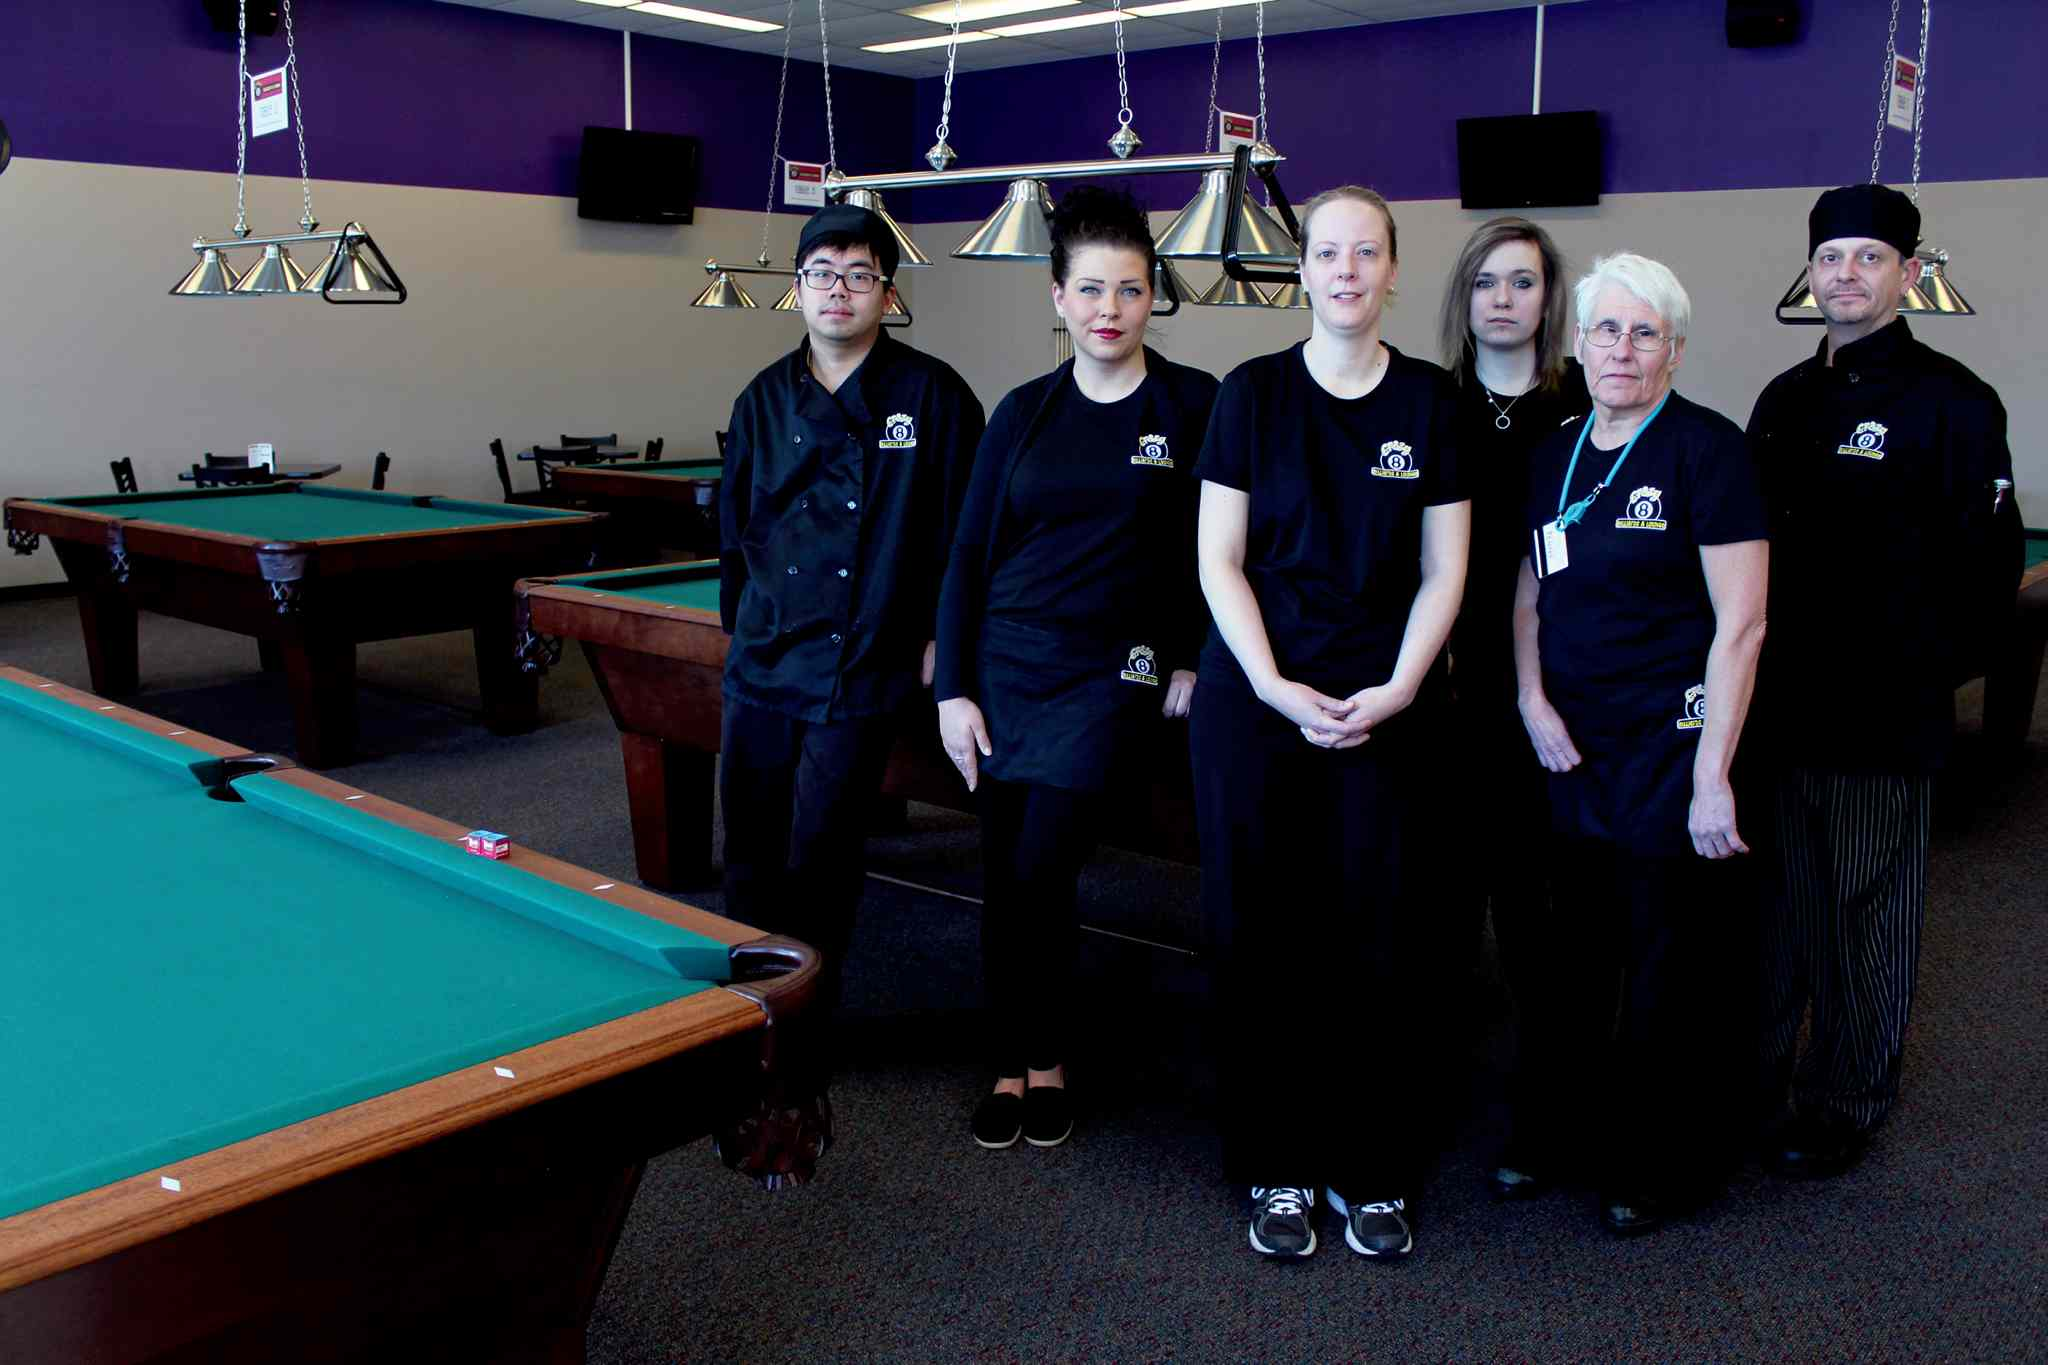 (From left) Star Wang, cook; Jennifer Merko, server; Alana Armstrong, owner; Victoria Newton, server; Penny Siemens, cashier; and Steve Beckman, kitchen manager at the newly opened Crazy 8 Billiards on Berry Street.